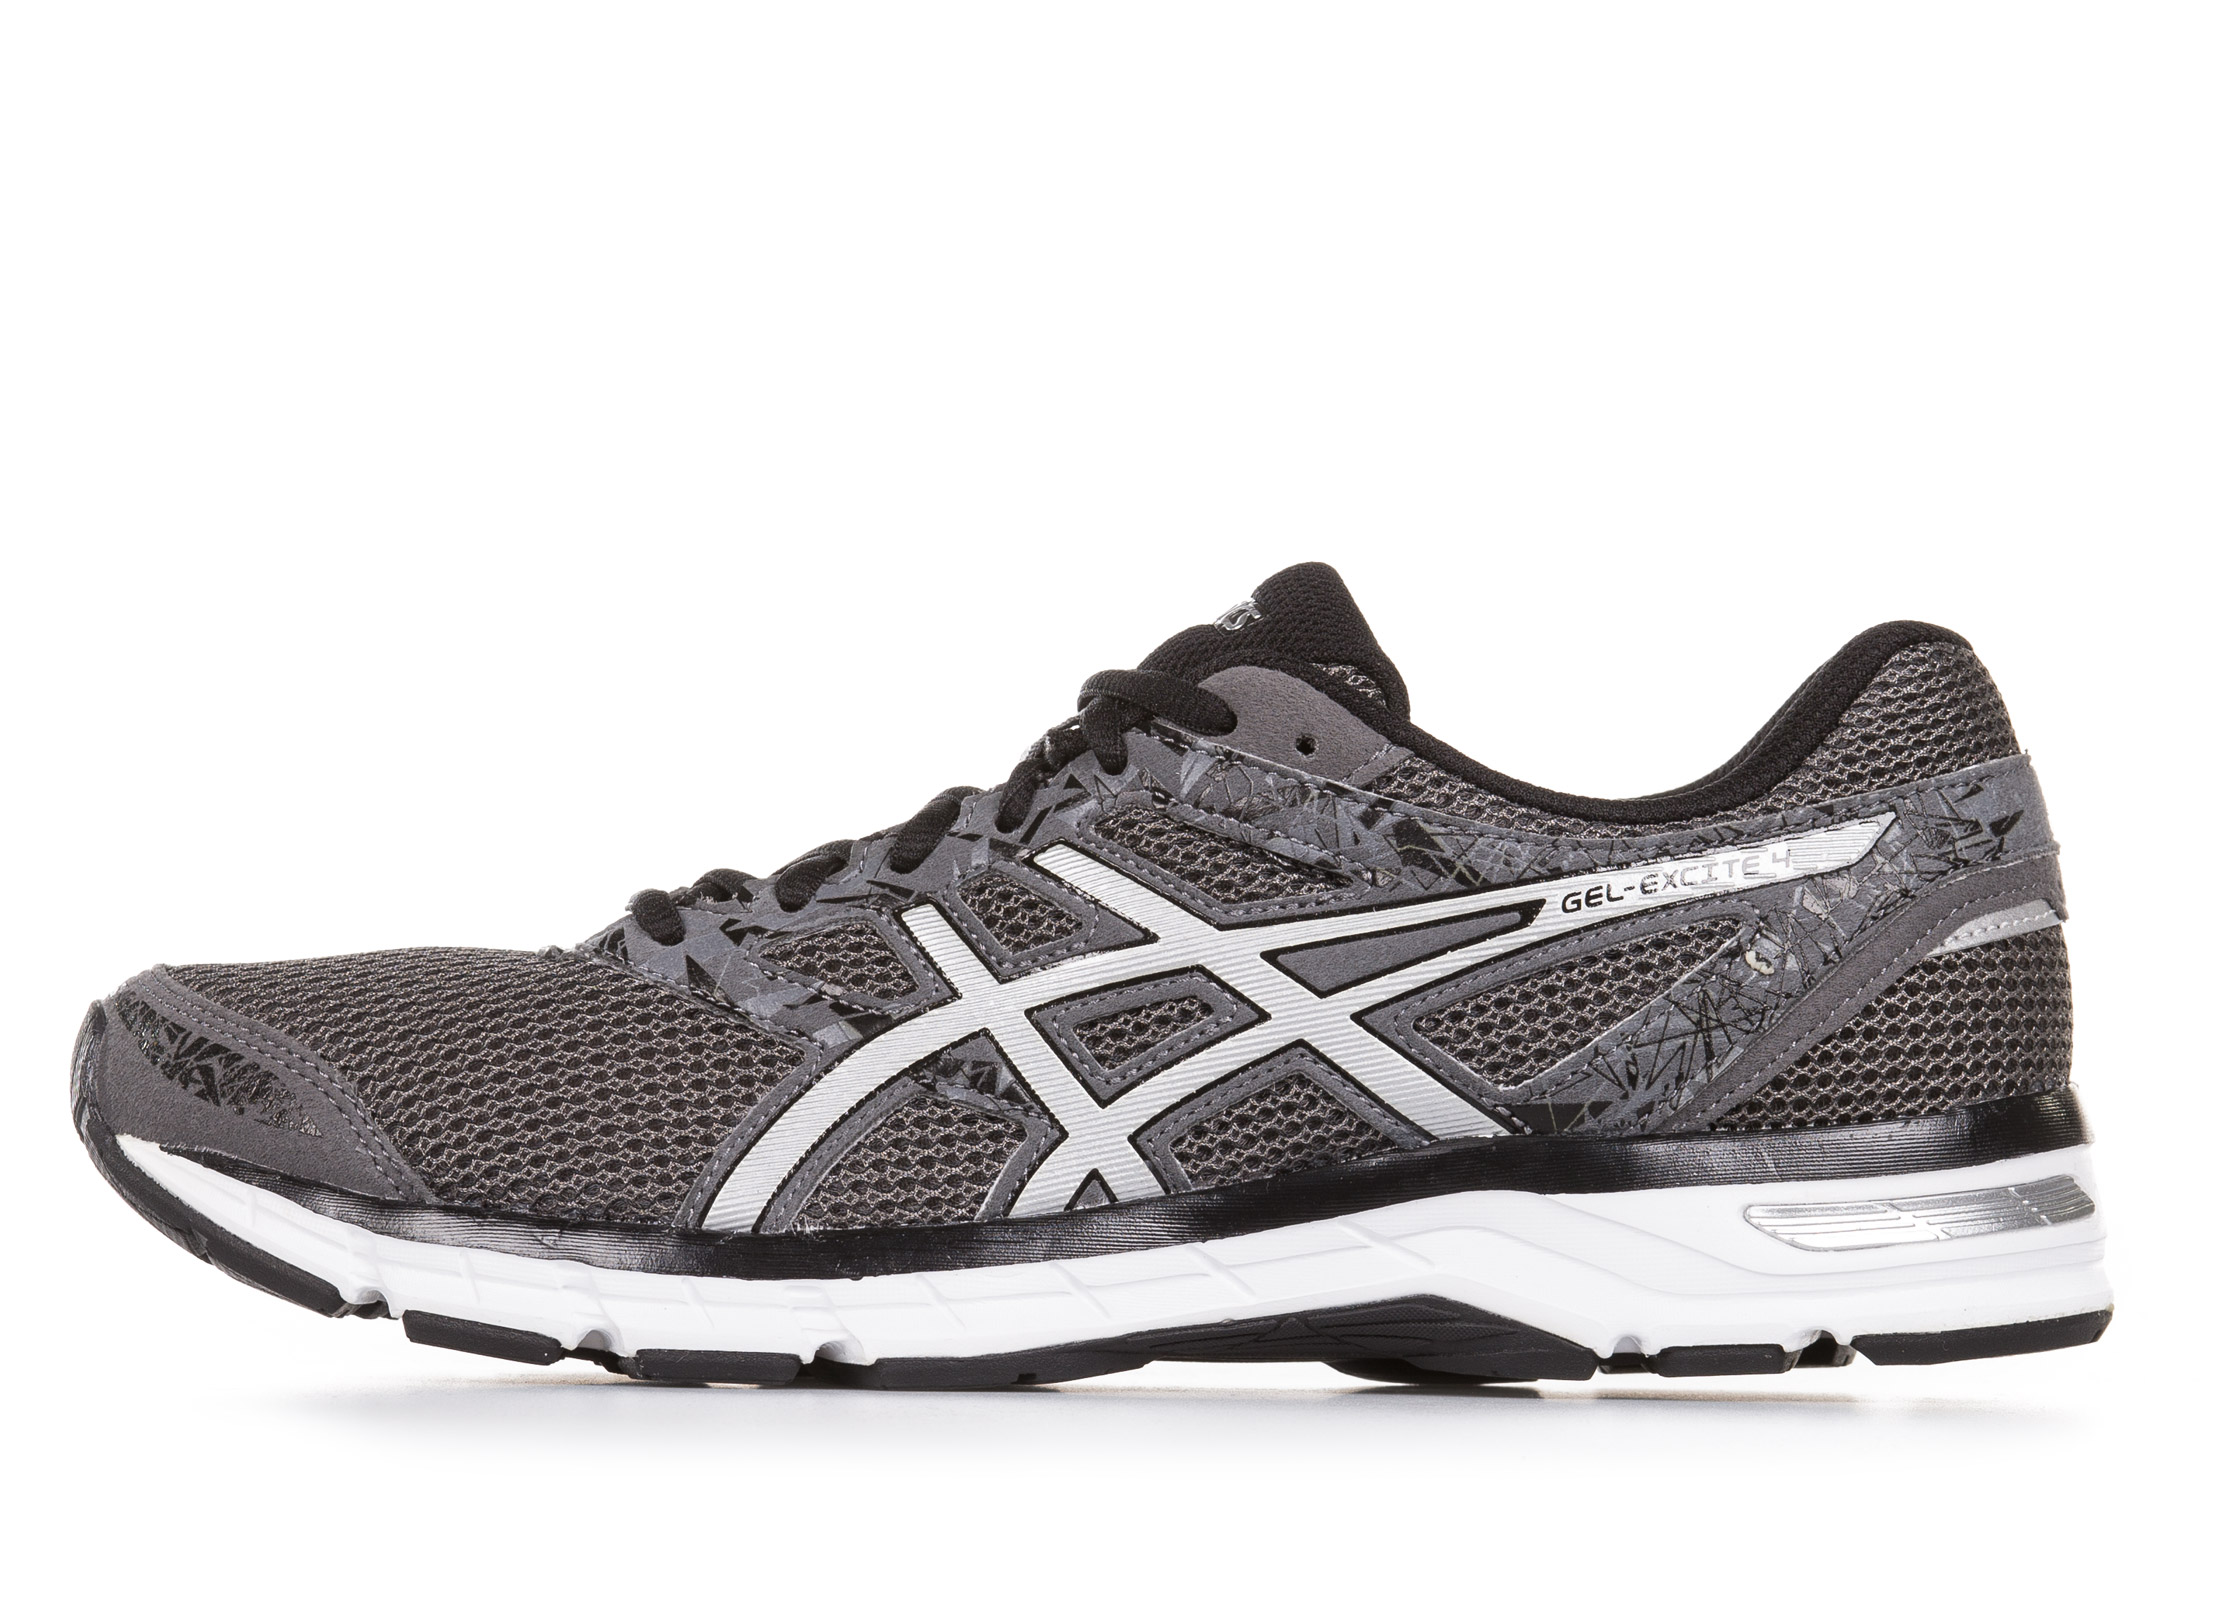 ASICS GEL-EXCITE 4 T6E3N-9793 Ανθρακί